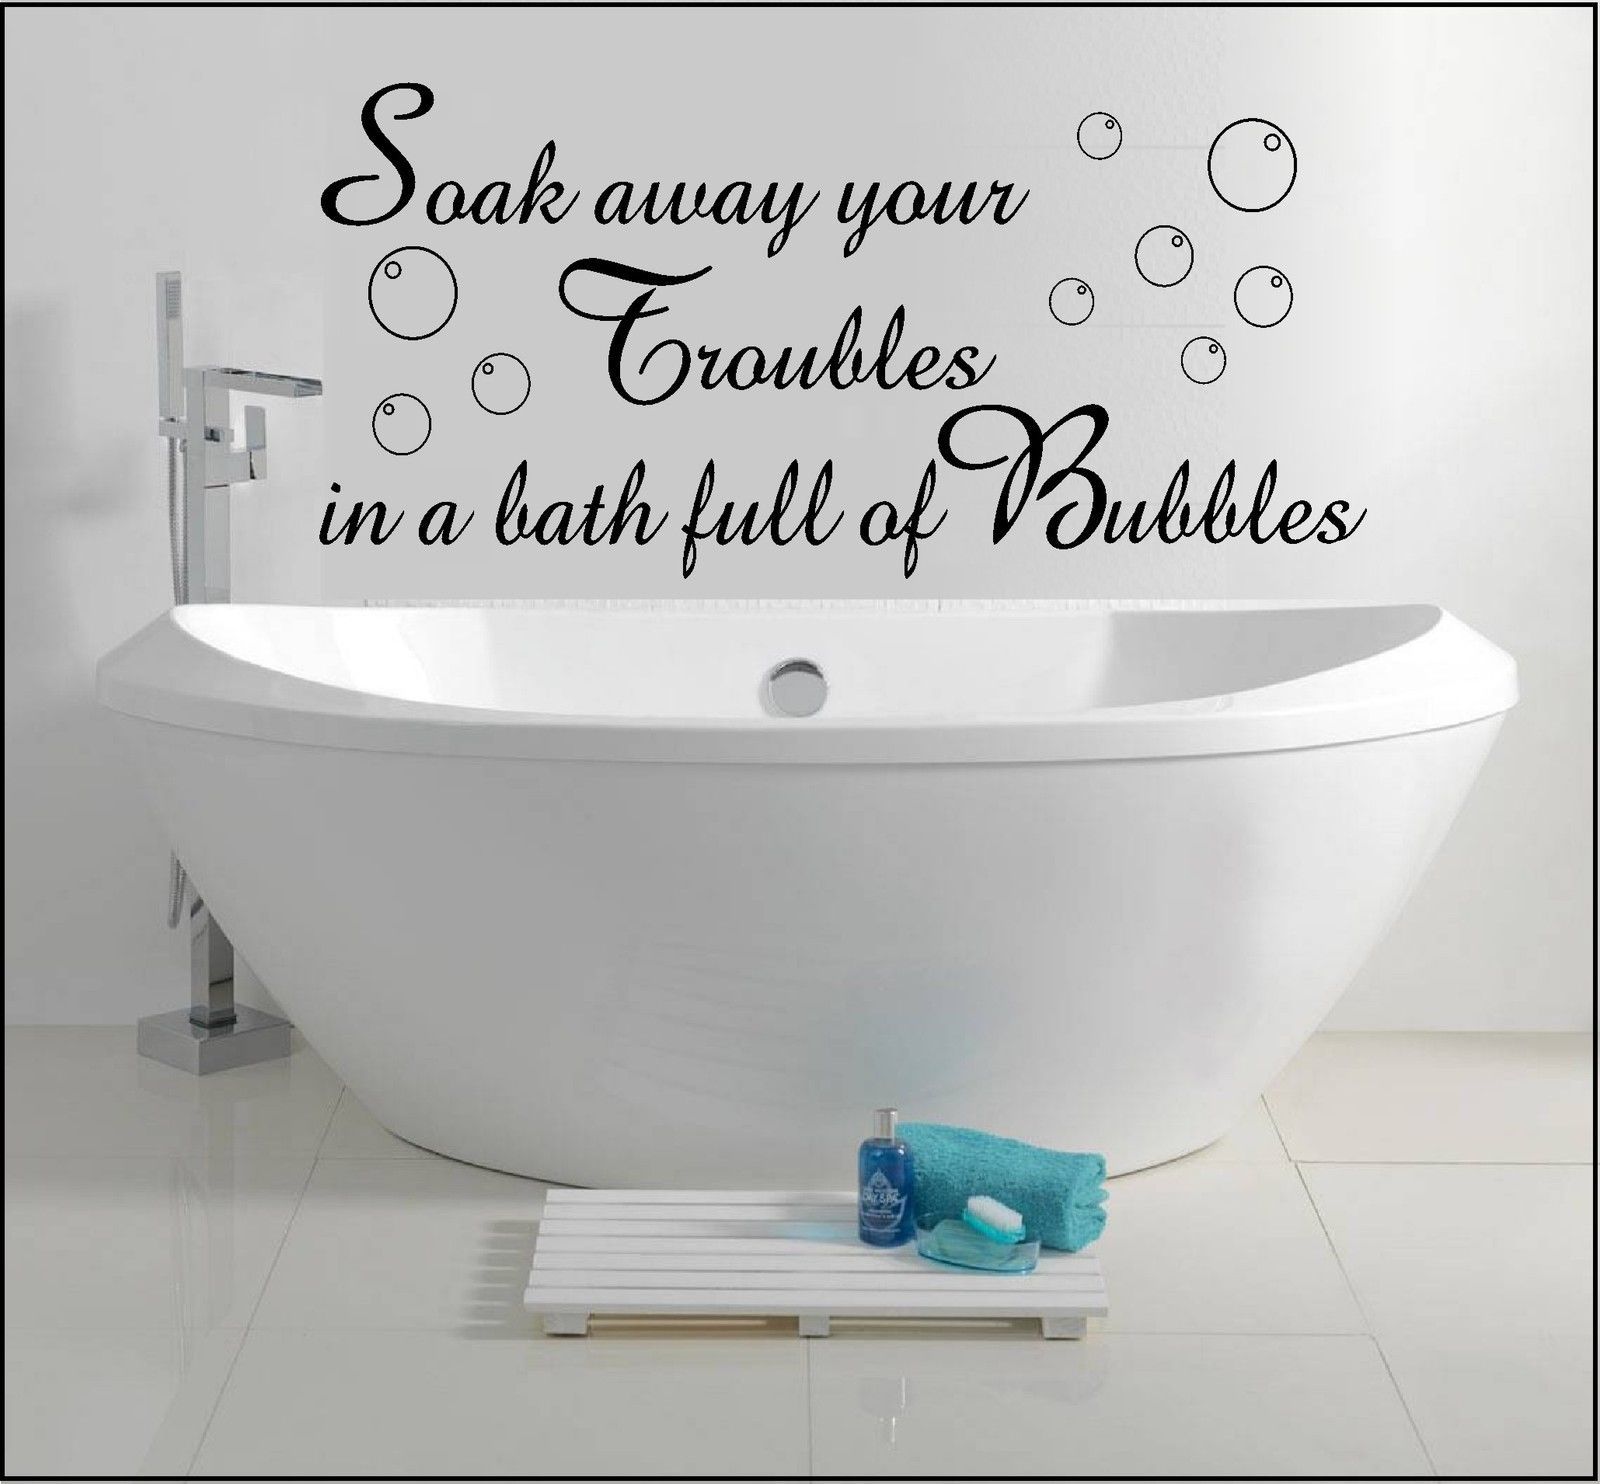 Bathroom wall decor quotes - D495 Bathroom Wall Art Sticker Quote Decal Soak Away Bath Bubbles Home Decor Sayings China